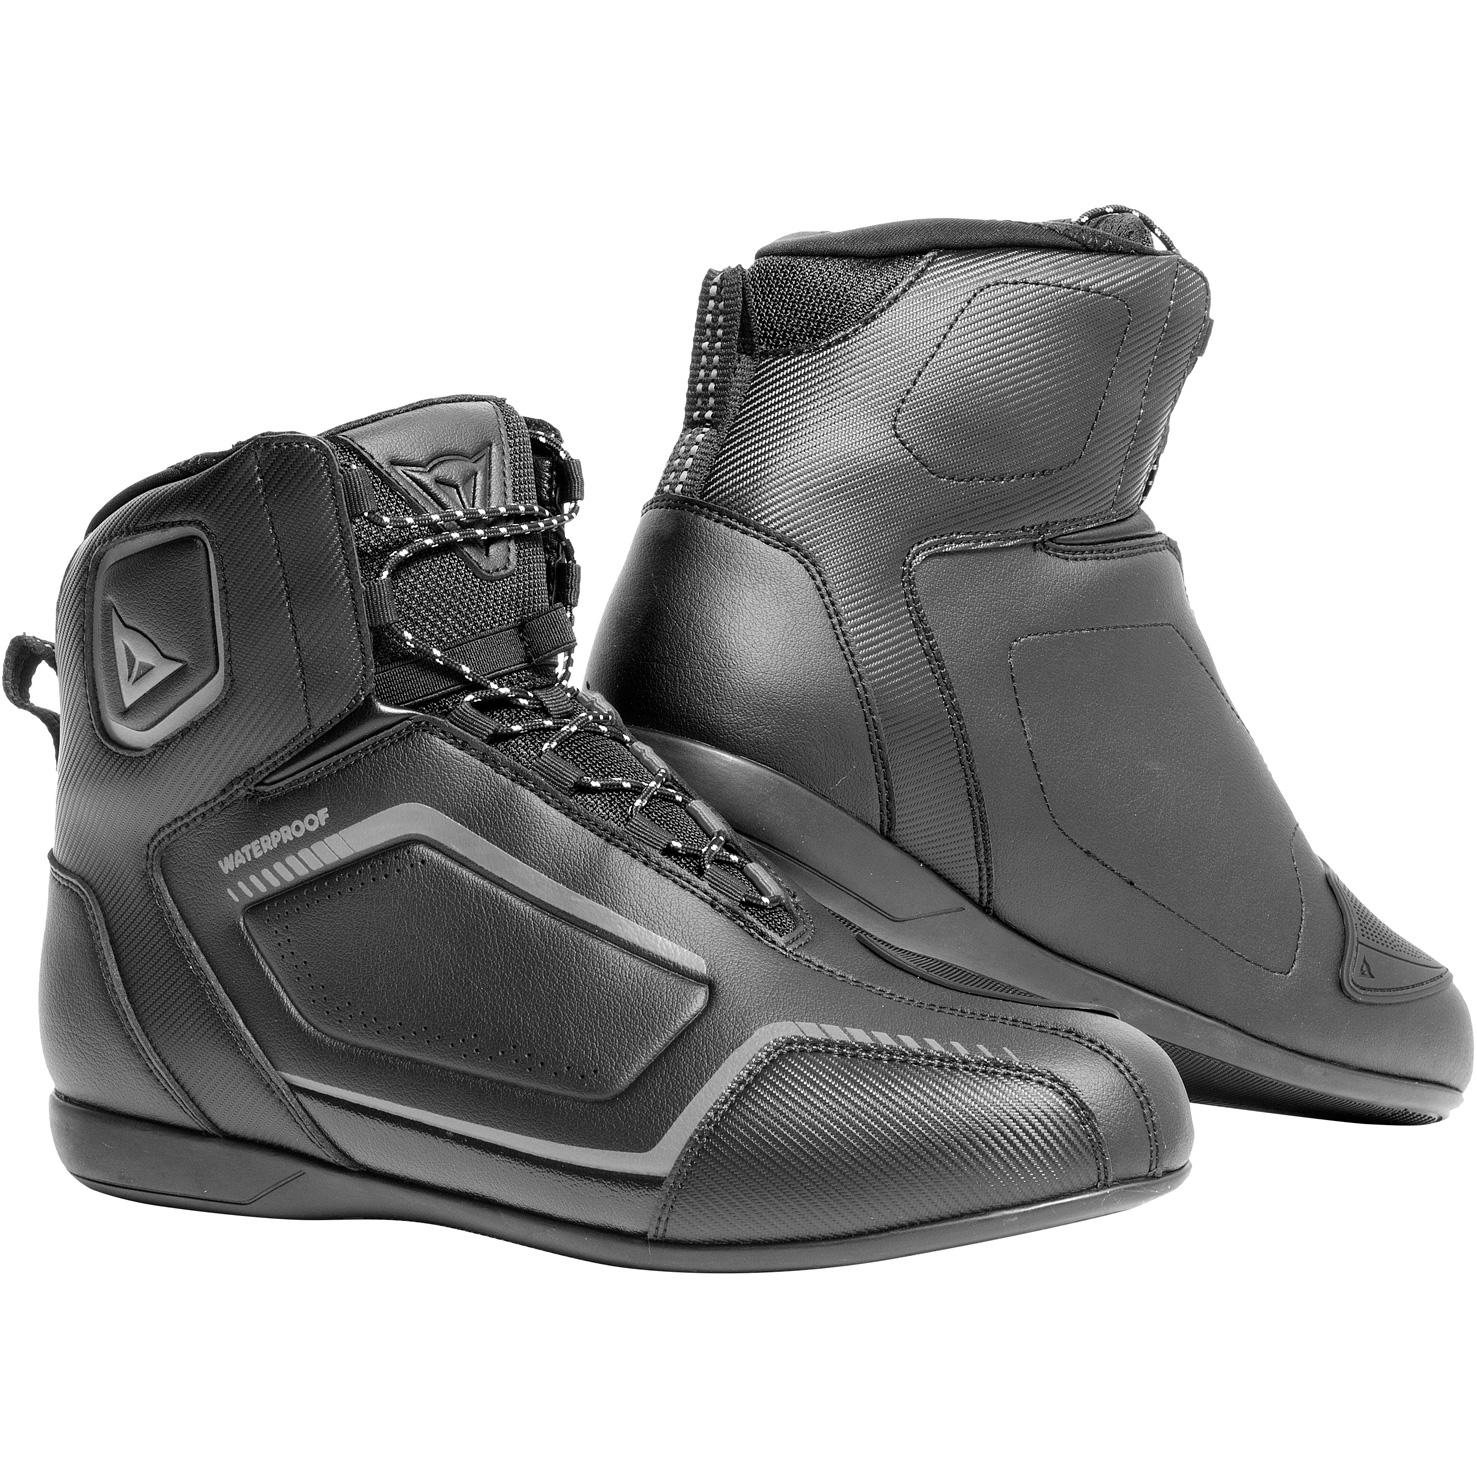 DAINESE-bottines-basses-raptors-d-wp-image-10938939